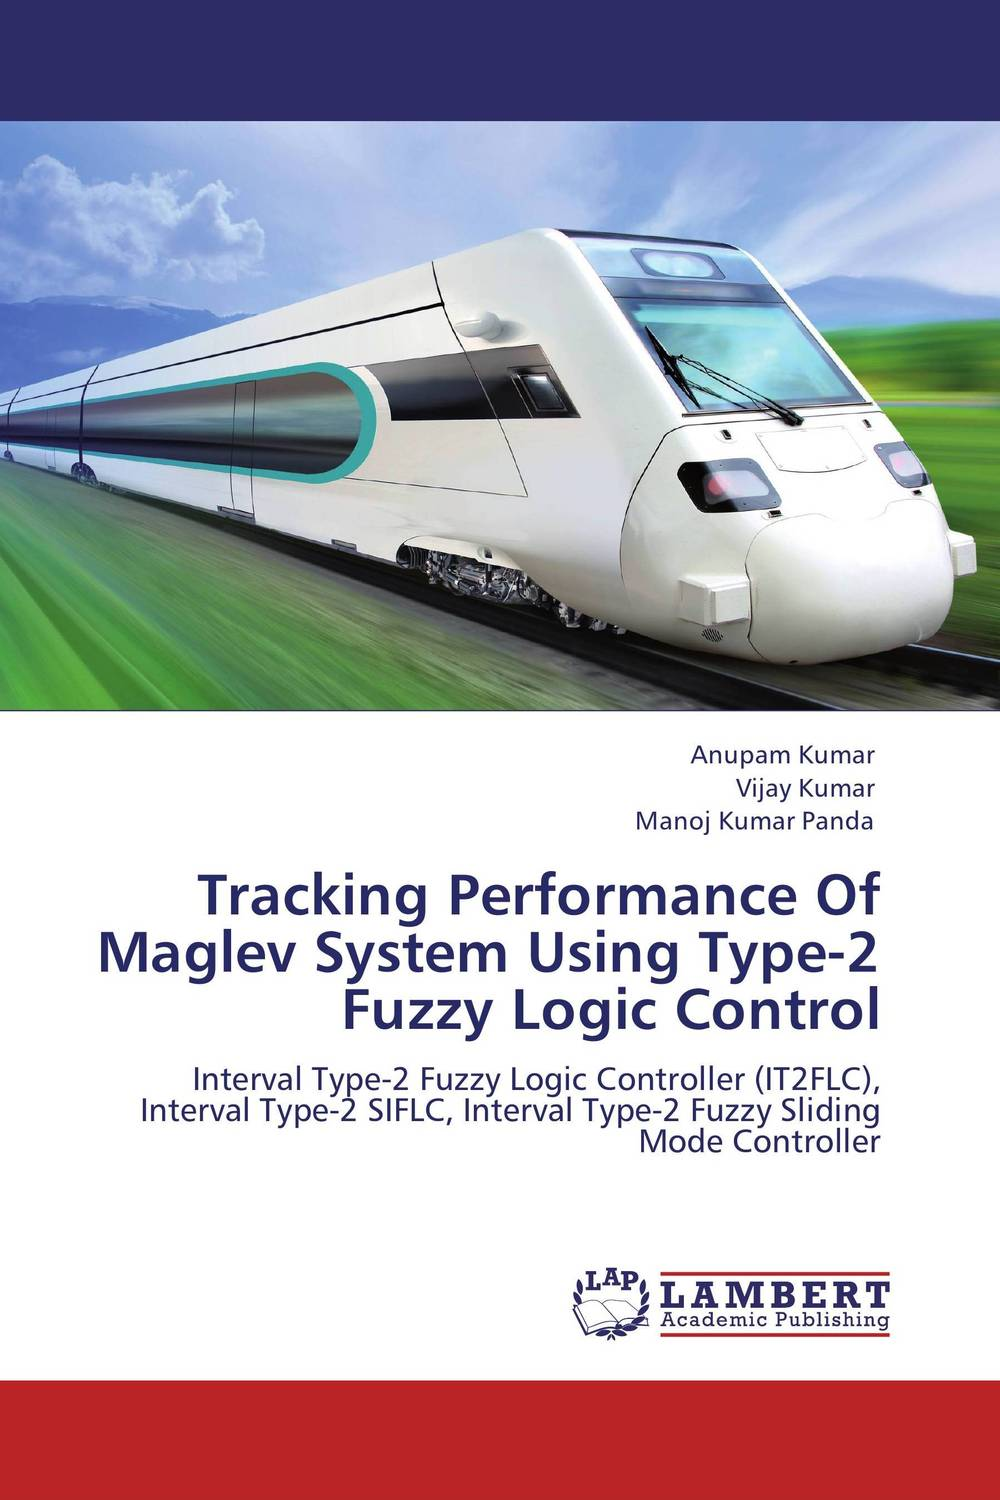 Tracking Performance Of Maglev System Using Type-2 Fuzzy Logic Control fuzzy logic supervisory control of discrete event system